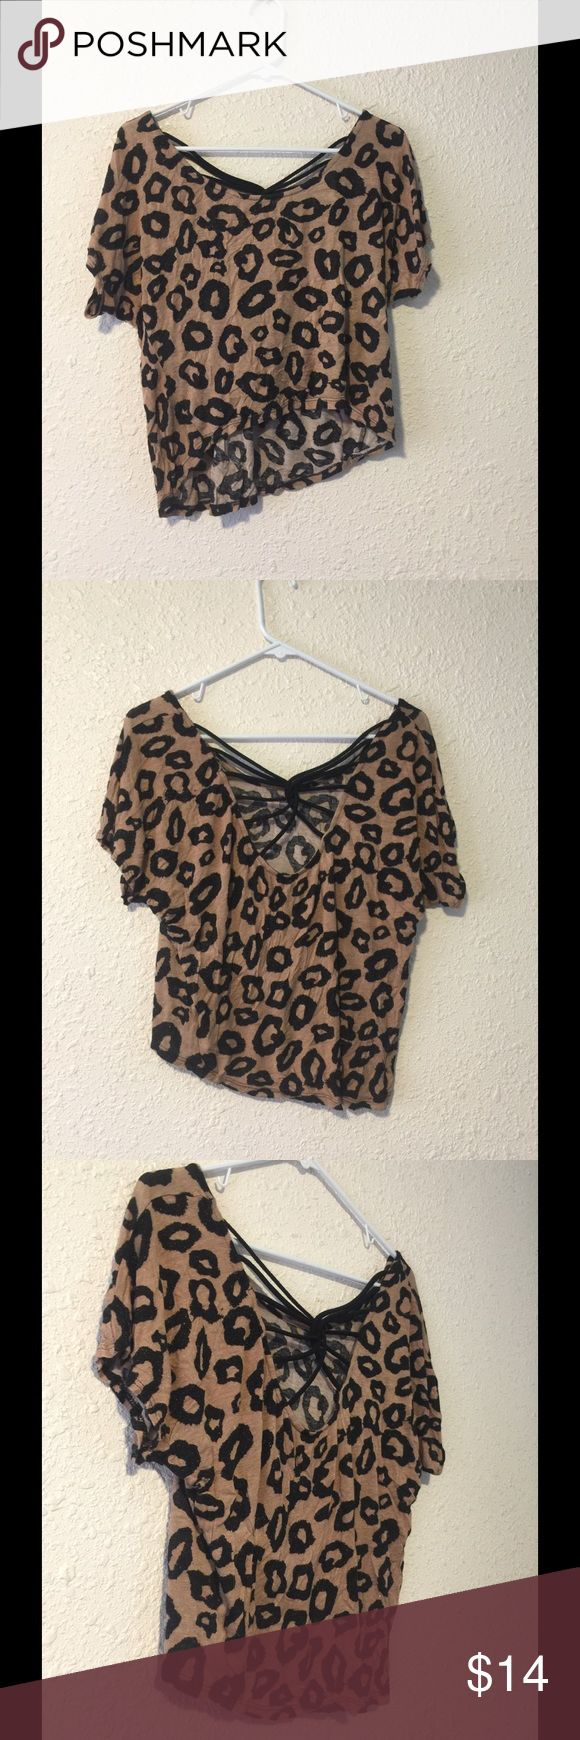 Super Cute cheetah print sparkly crop top✨ Slightly longer in back then front, brand is Julie's closet Tops Crop Tops